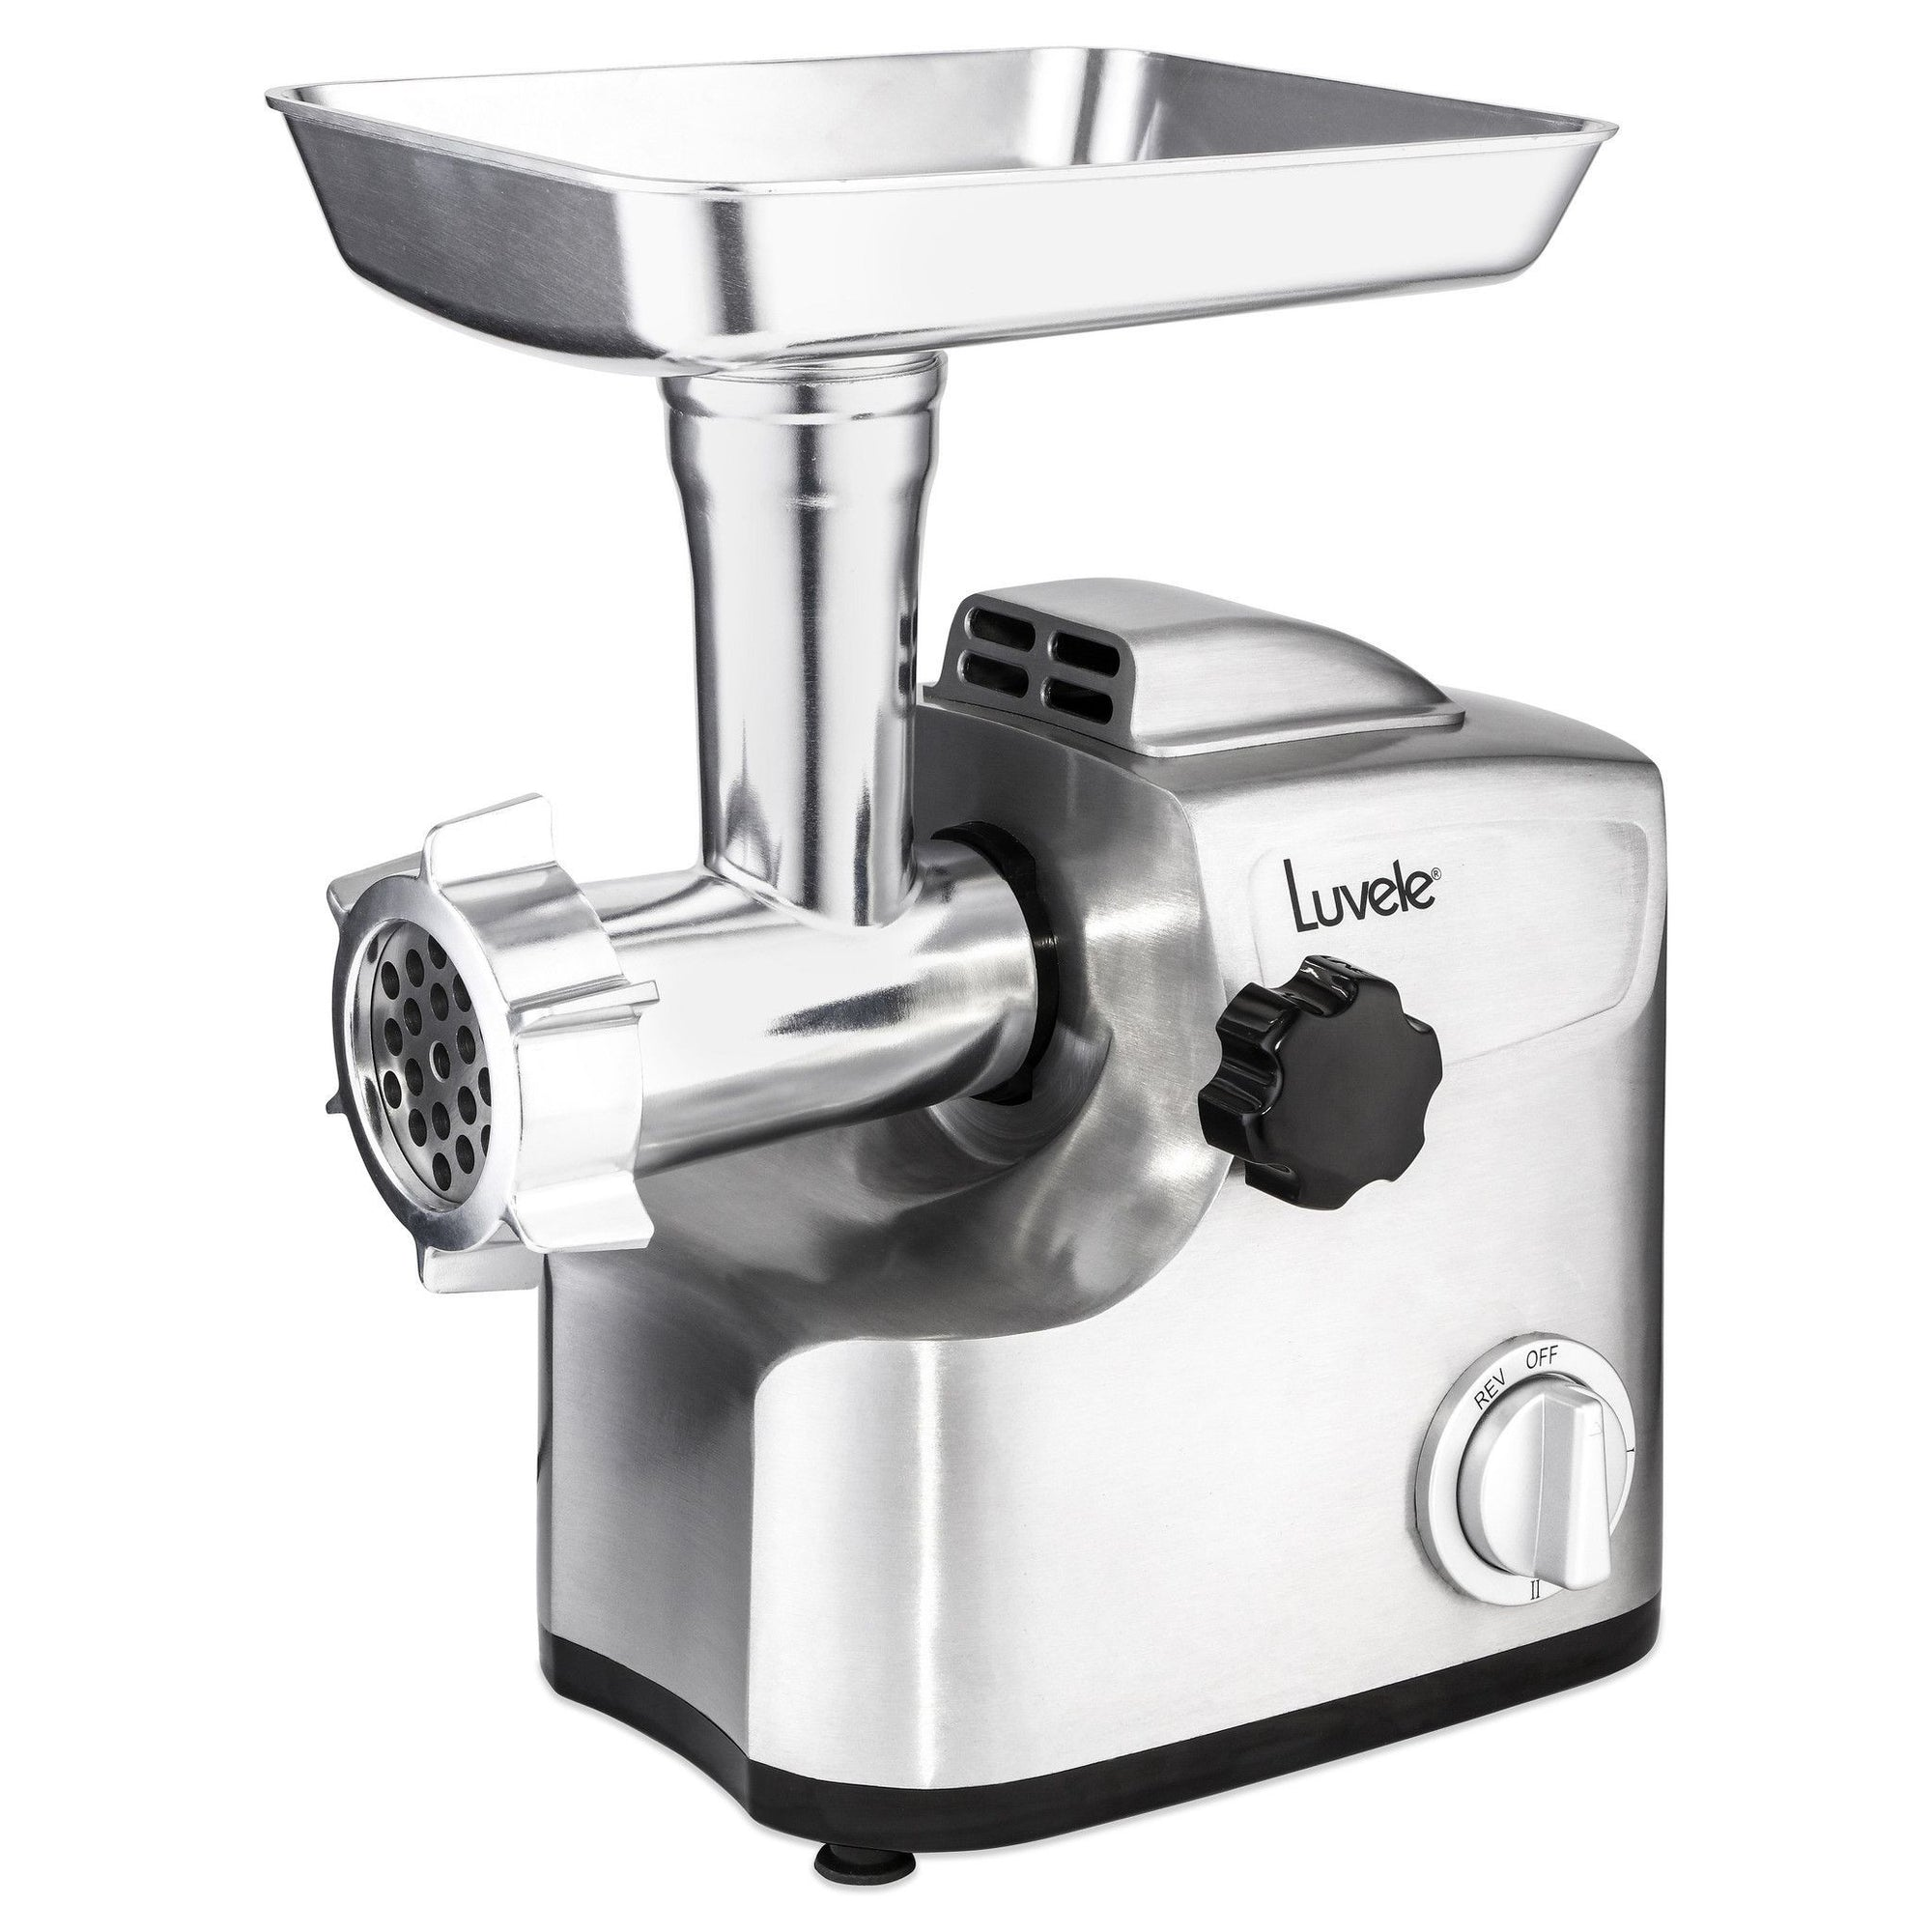 Luvele Ultimate Electric Meat Grinder | Sausage Maker | 1800w (700w rated)-Meat Grinder-Luvele UK-LUMG700EU-Luvele EU